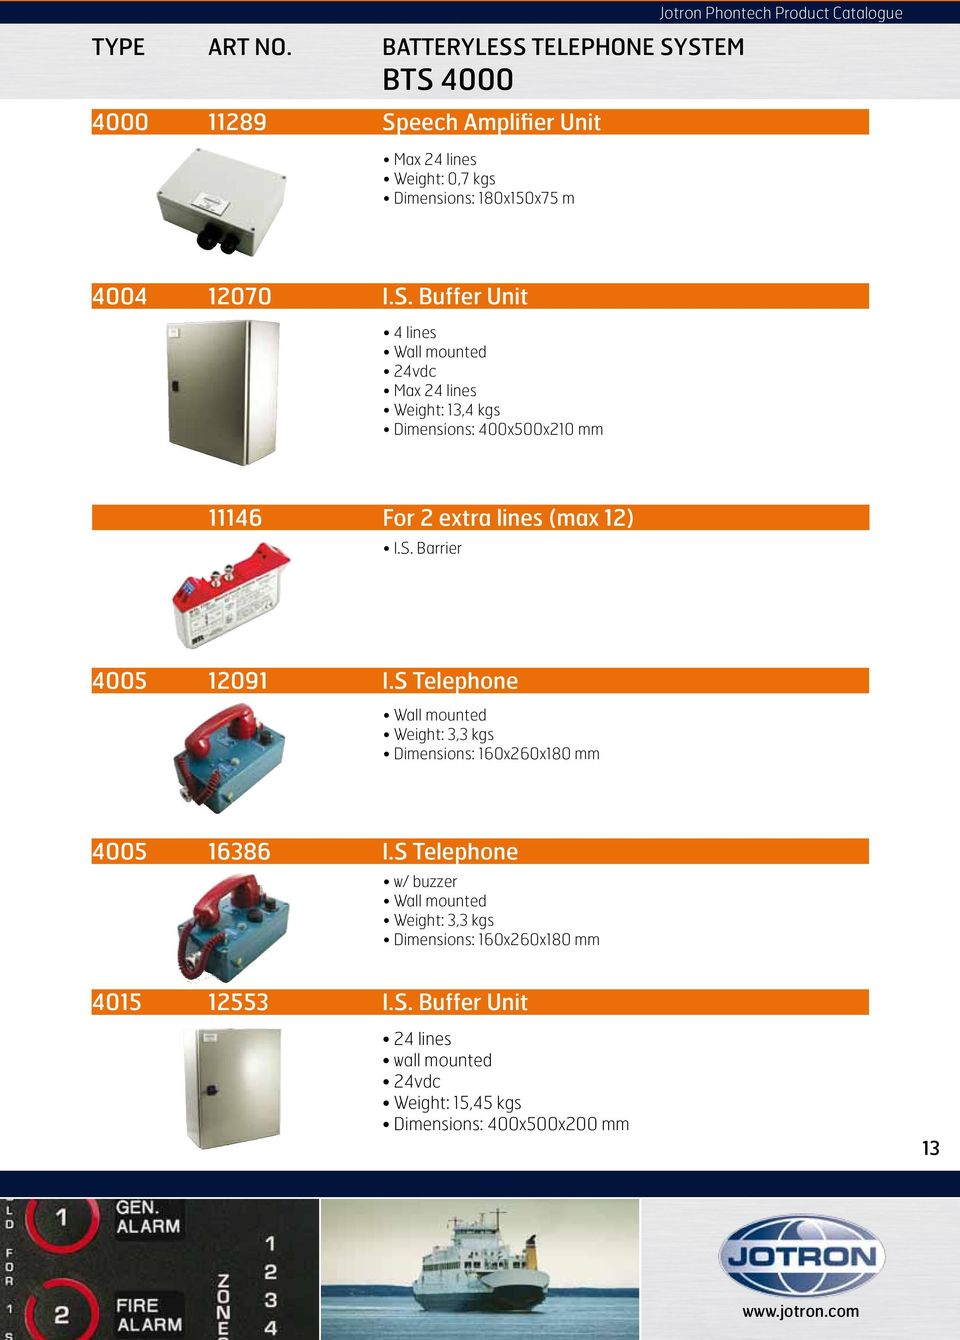 Phontech Communications Systems Product Catalogue June Pdf System Ebl128 Panasonic Electric Works Europe Ag 4004 12070 Is